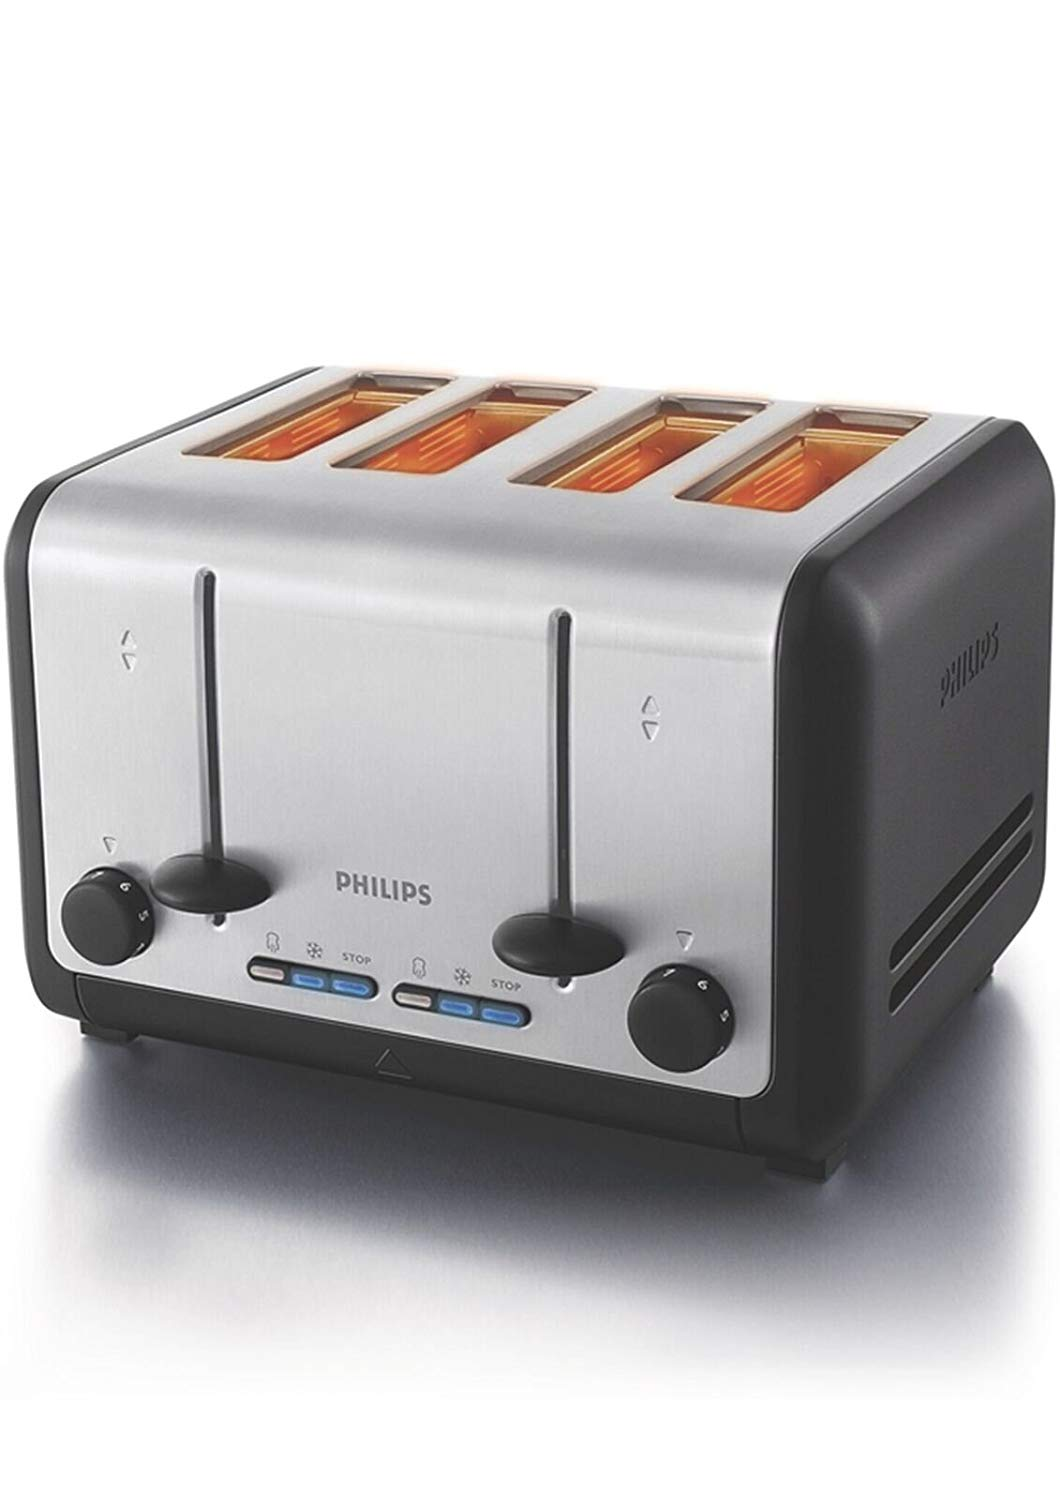 Philips HD2647/20 Toaster